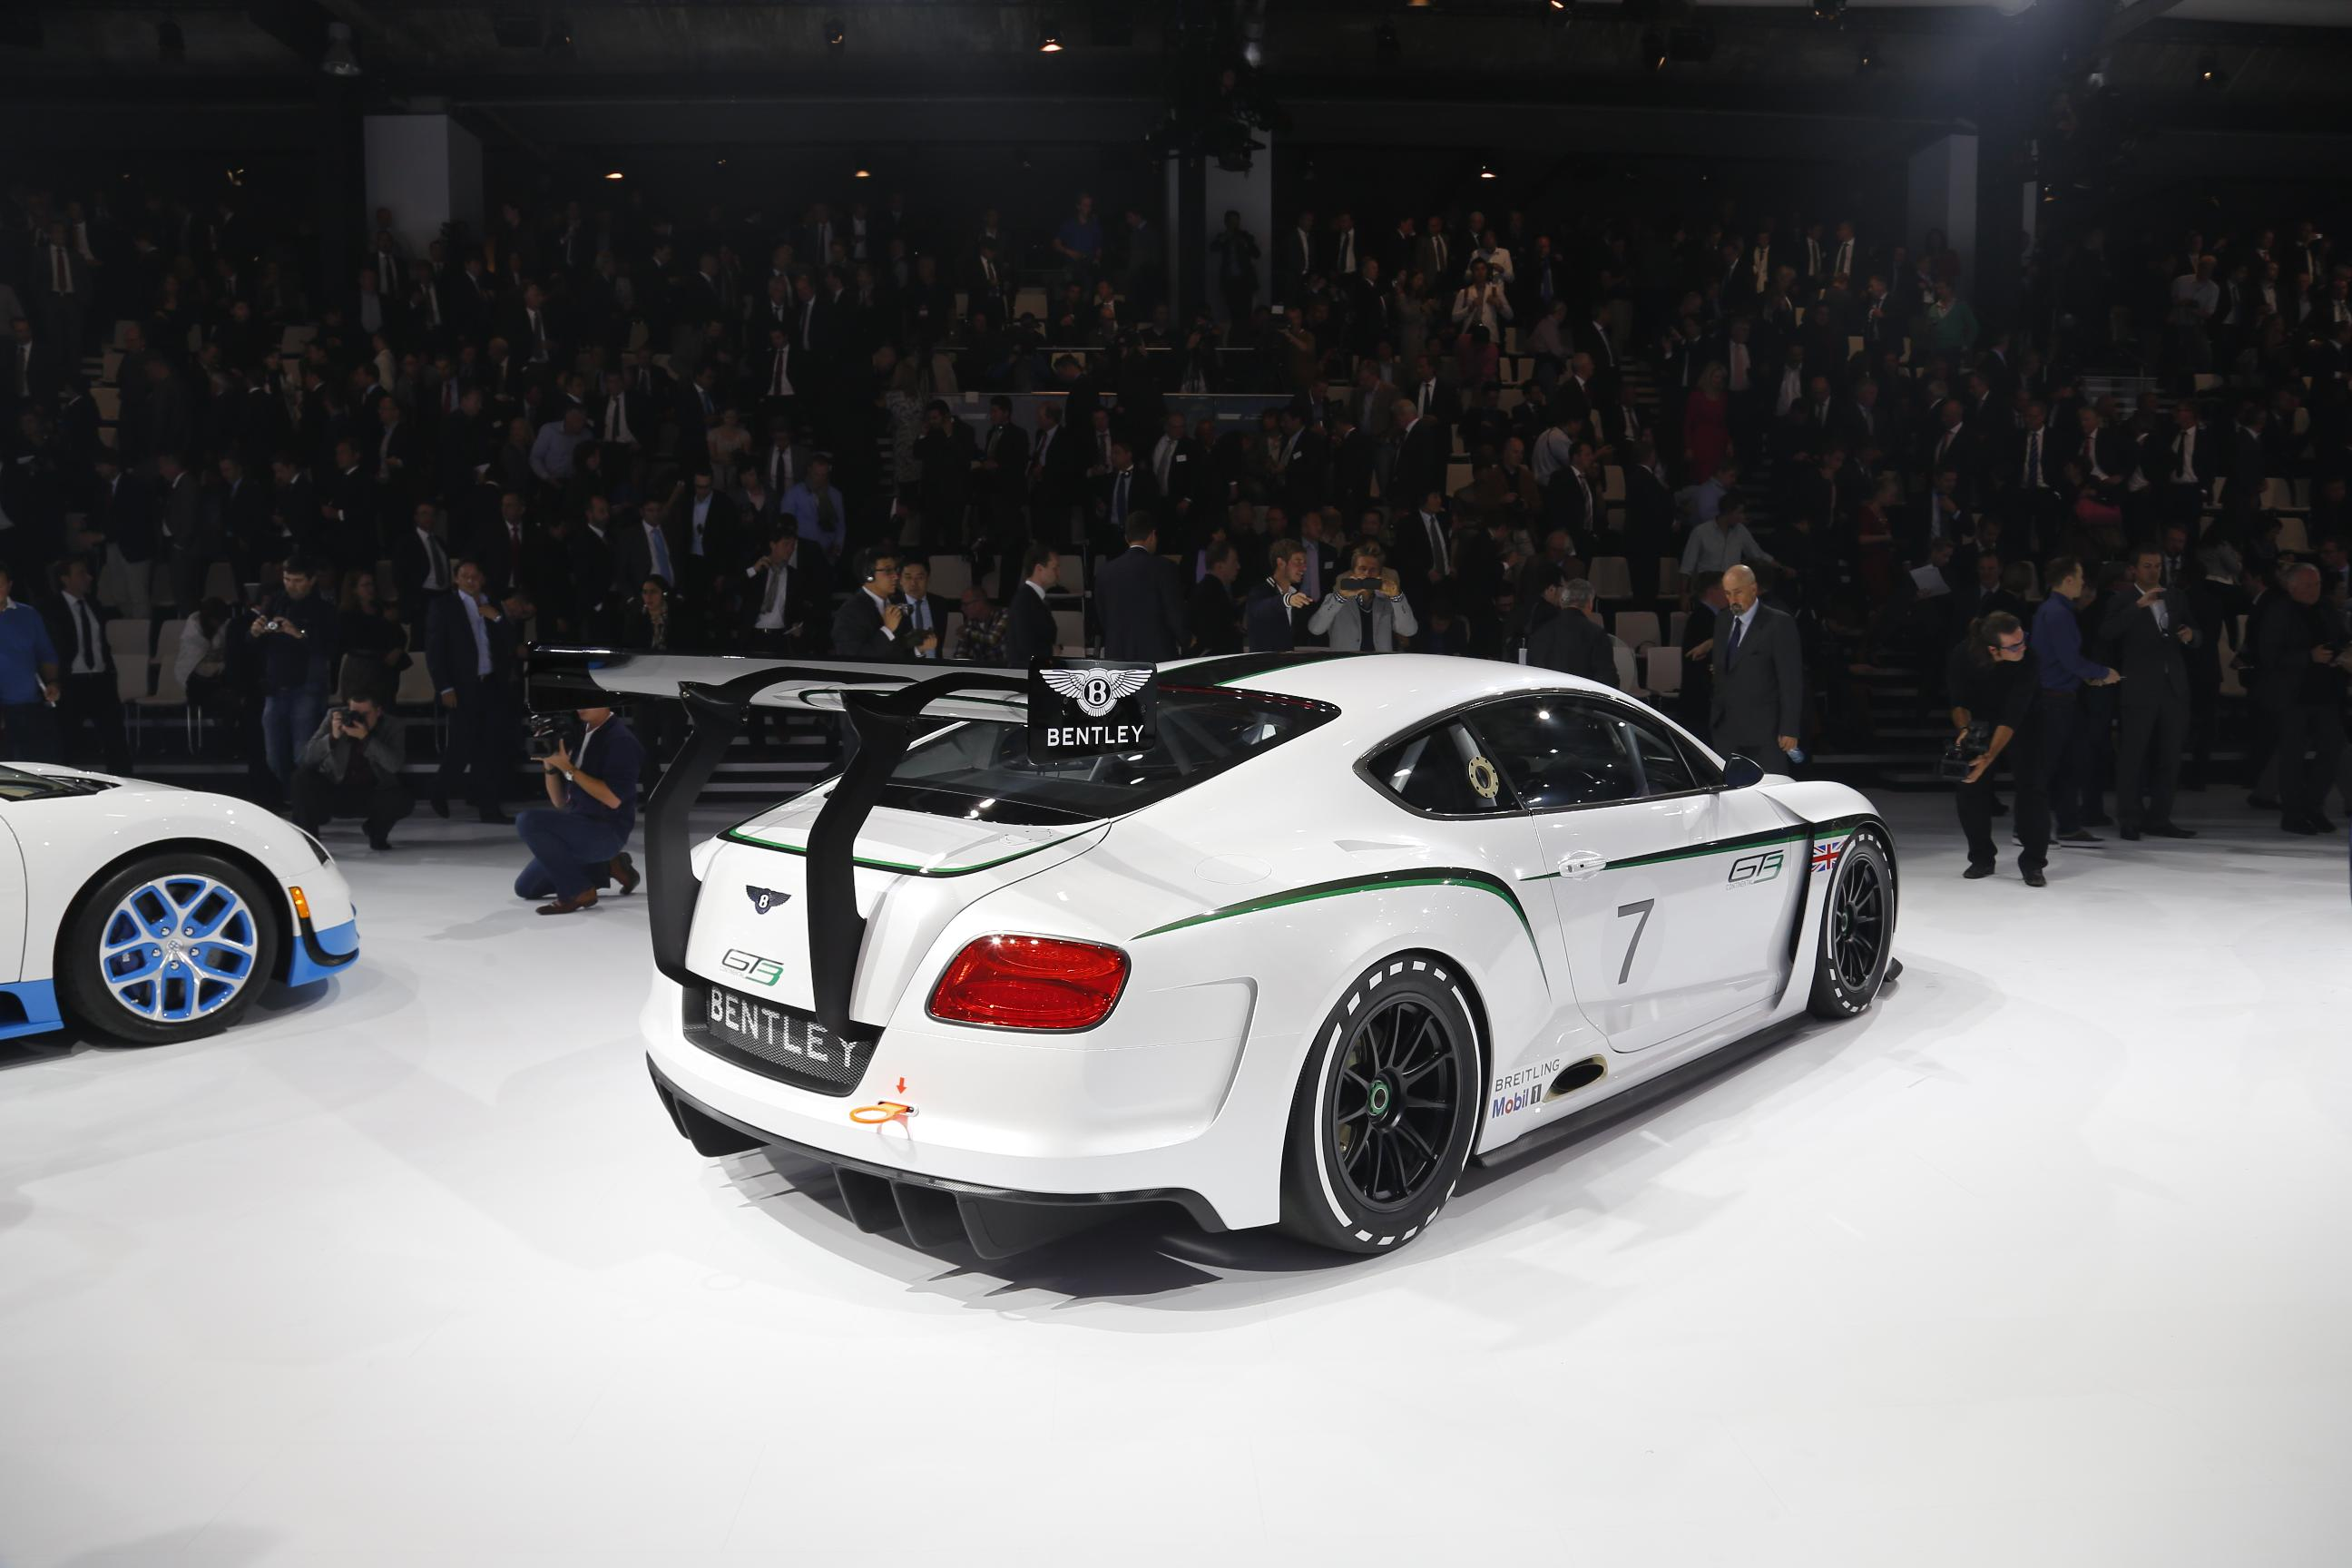 2019 Bentley Continental GT3 Concept photo - 3